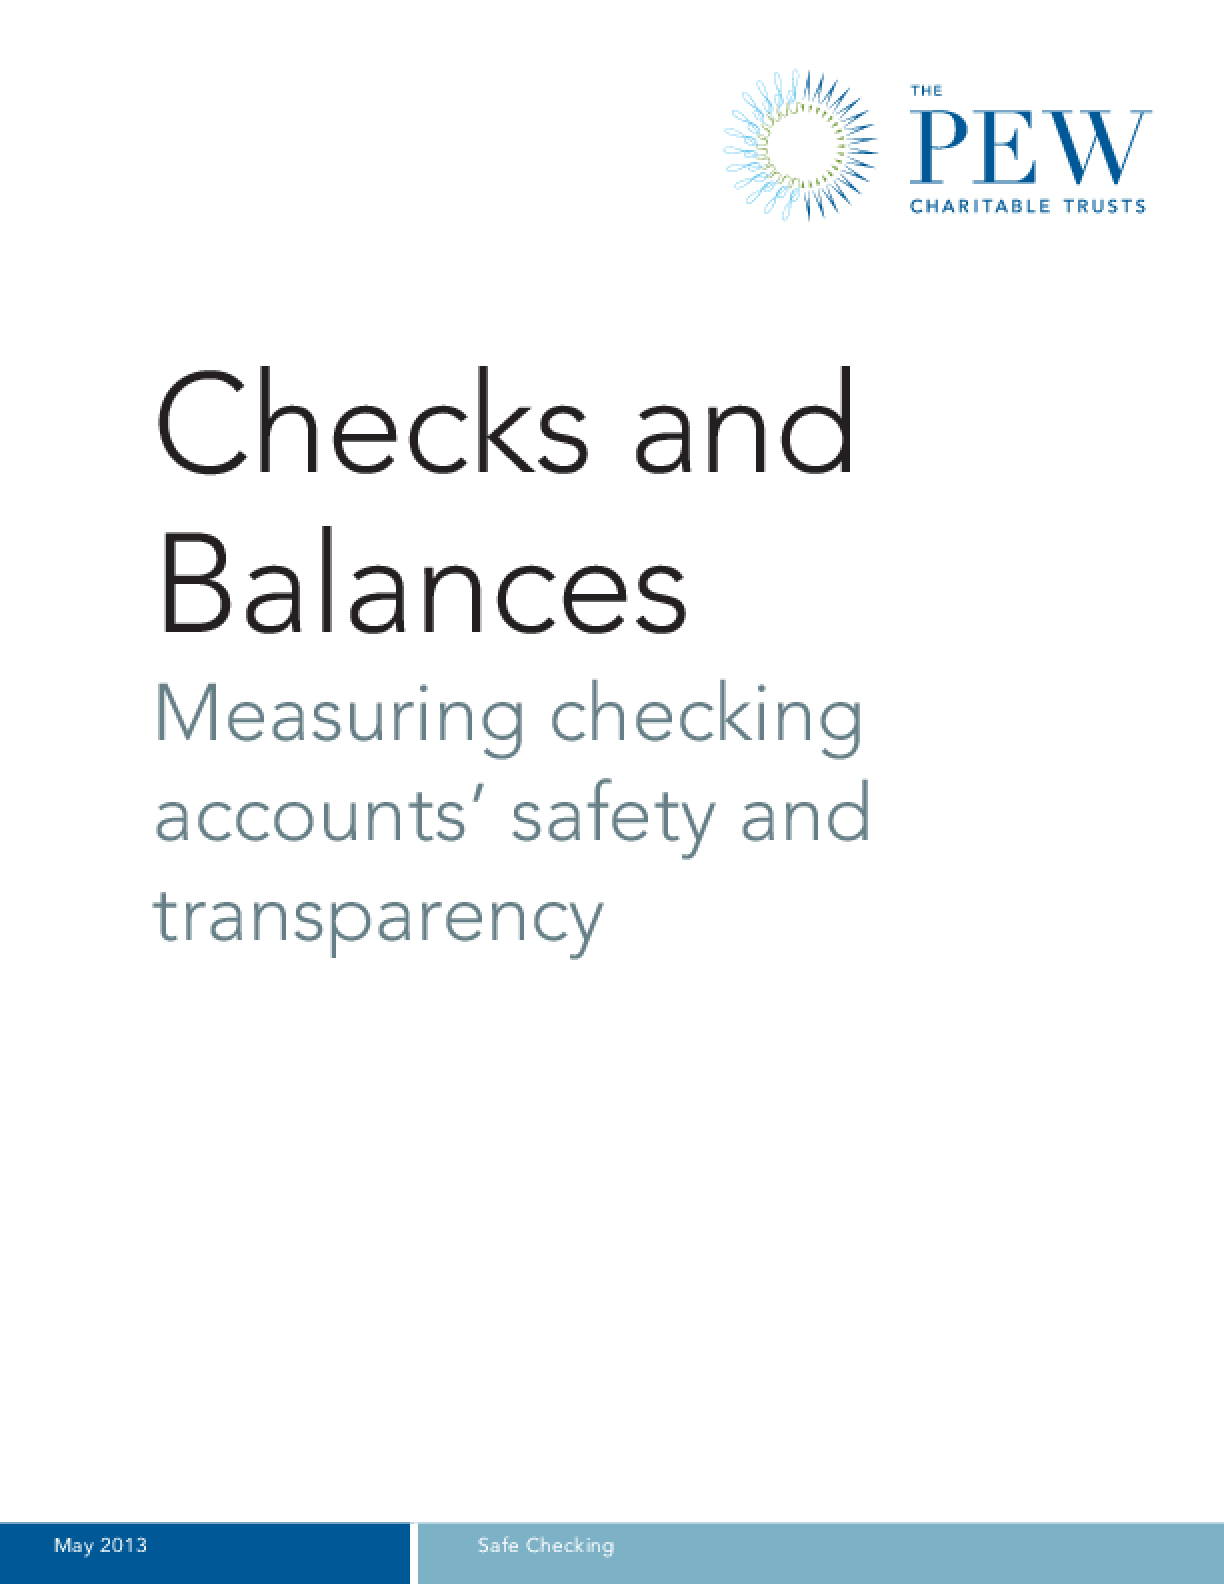 Checks and Balances: Measuring Checking Accounts' Safety and Transparency